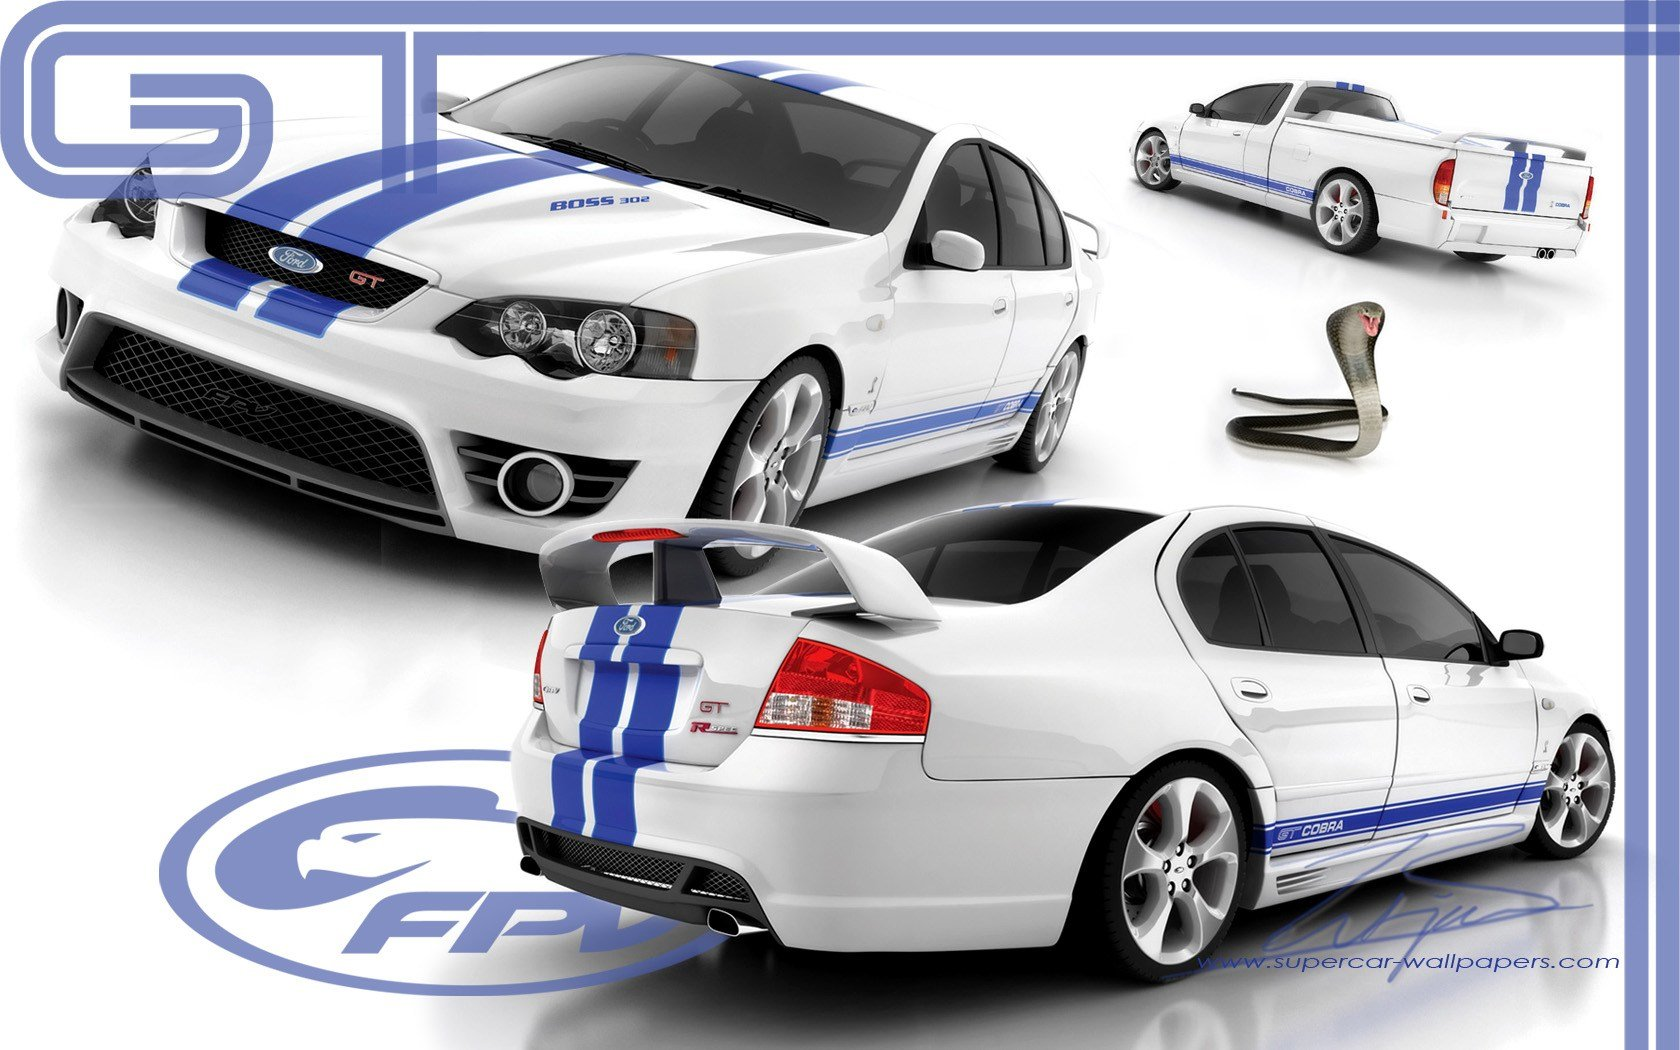 New Ford Fpv Gt Cobra Wallpaper And Background Image On This Month